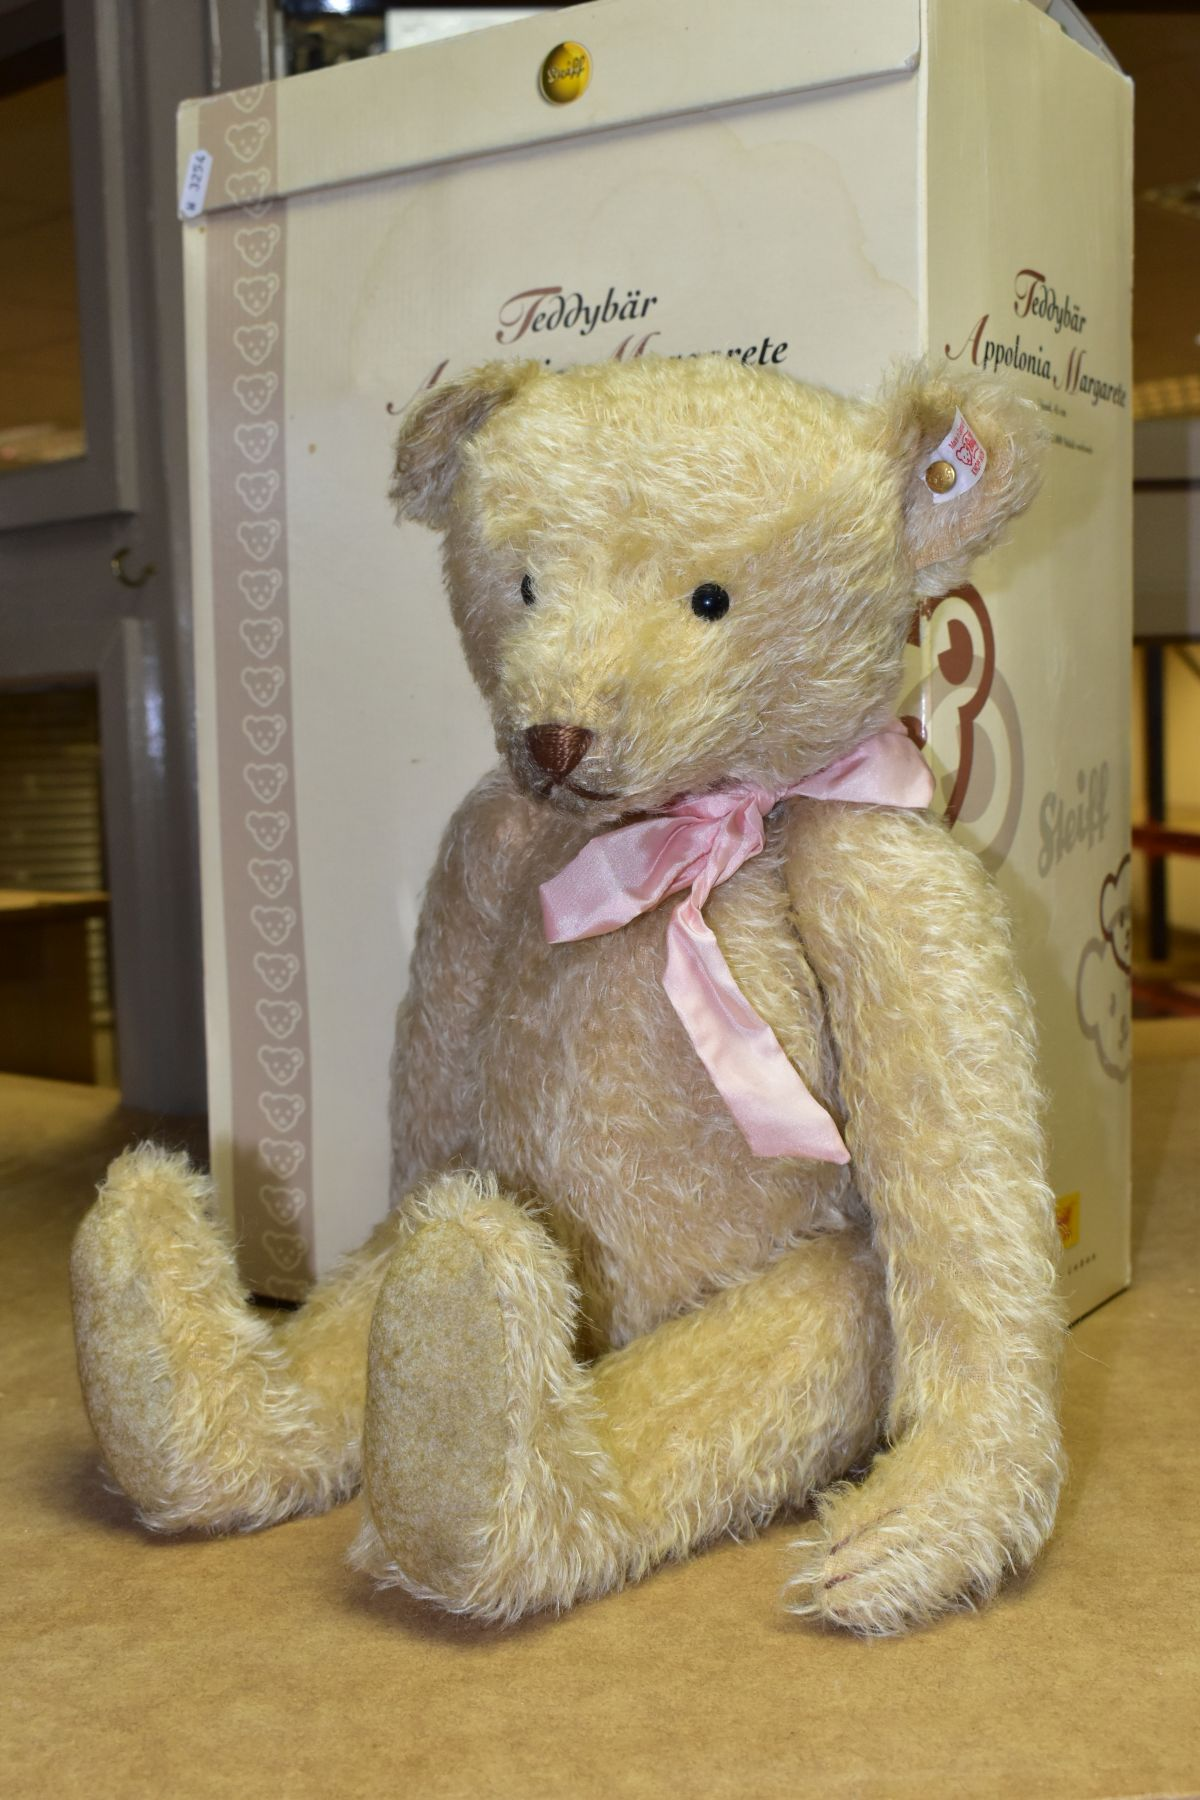 A BOXED STEIFF LIMITED EDITION APPOLONIA MARGARETE TEDDYBEAR, No. 038112, limited edition No. 1171 - Image 2 of 5